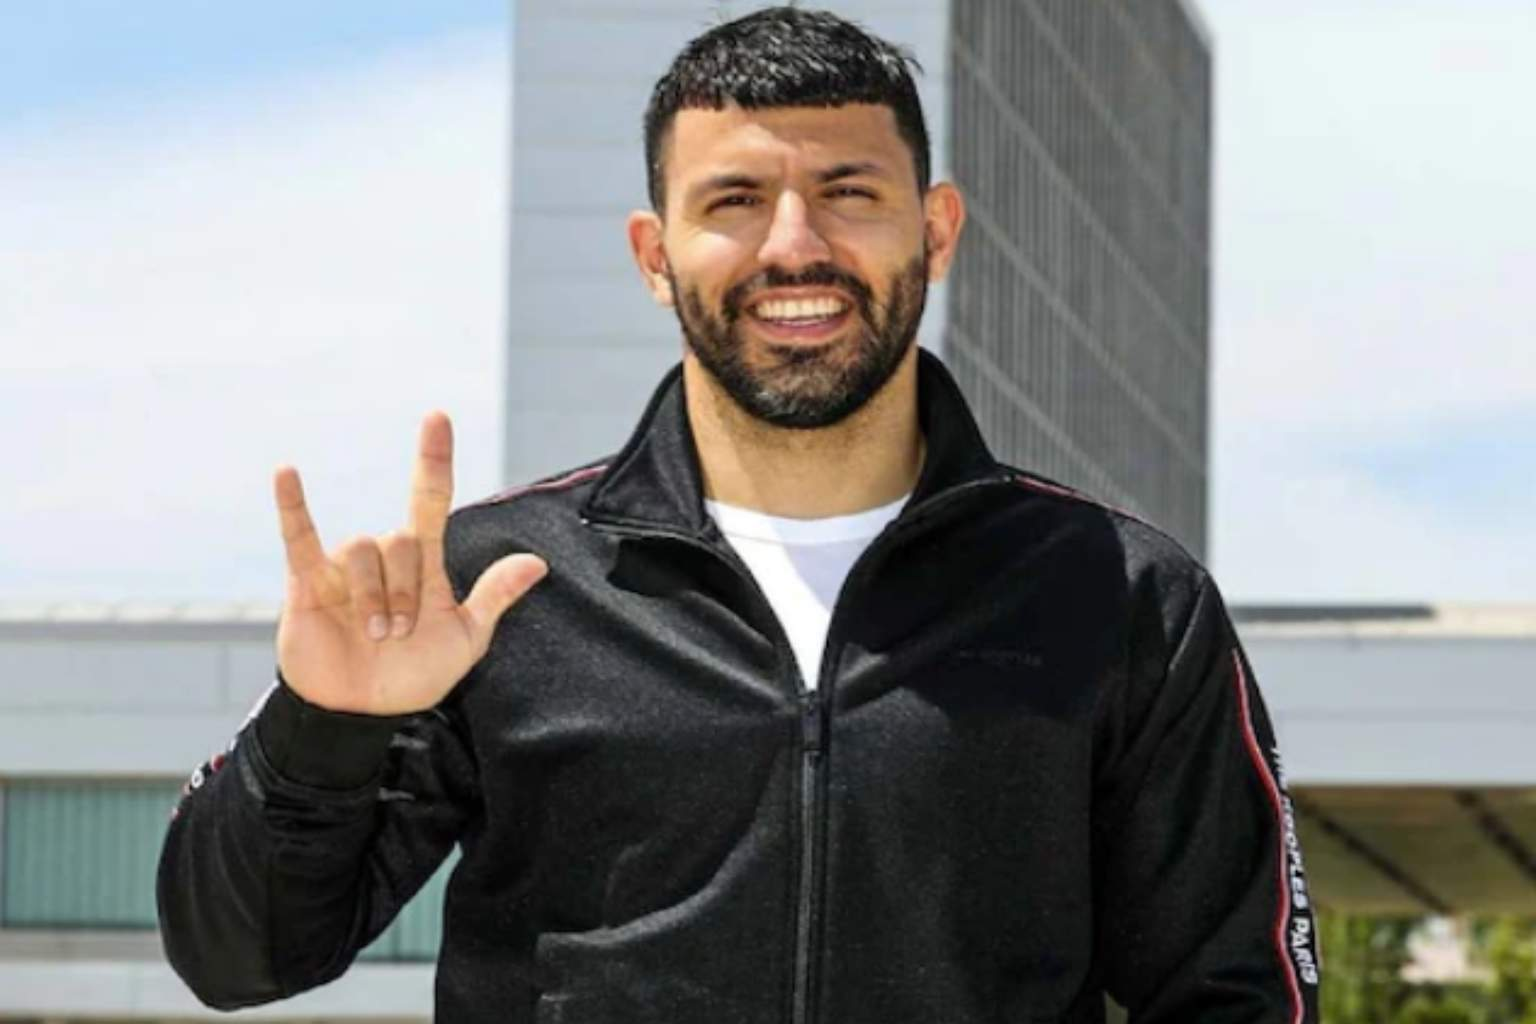 Manchester City striker Sergio Aguero signs a 2-year deal at Barcelona